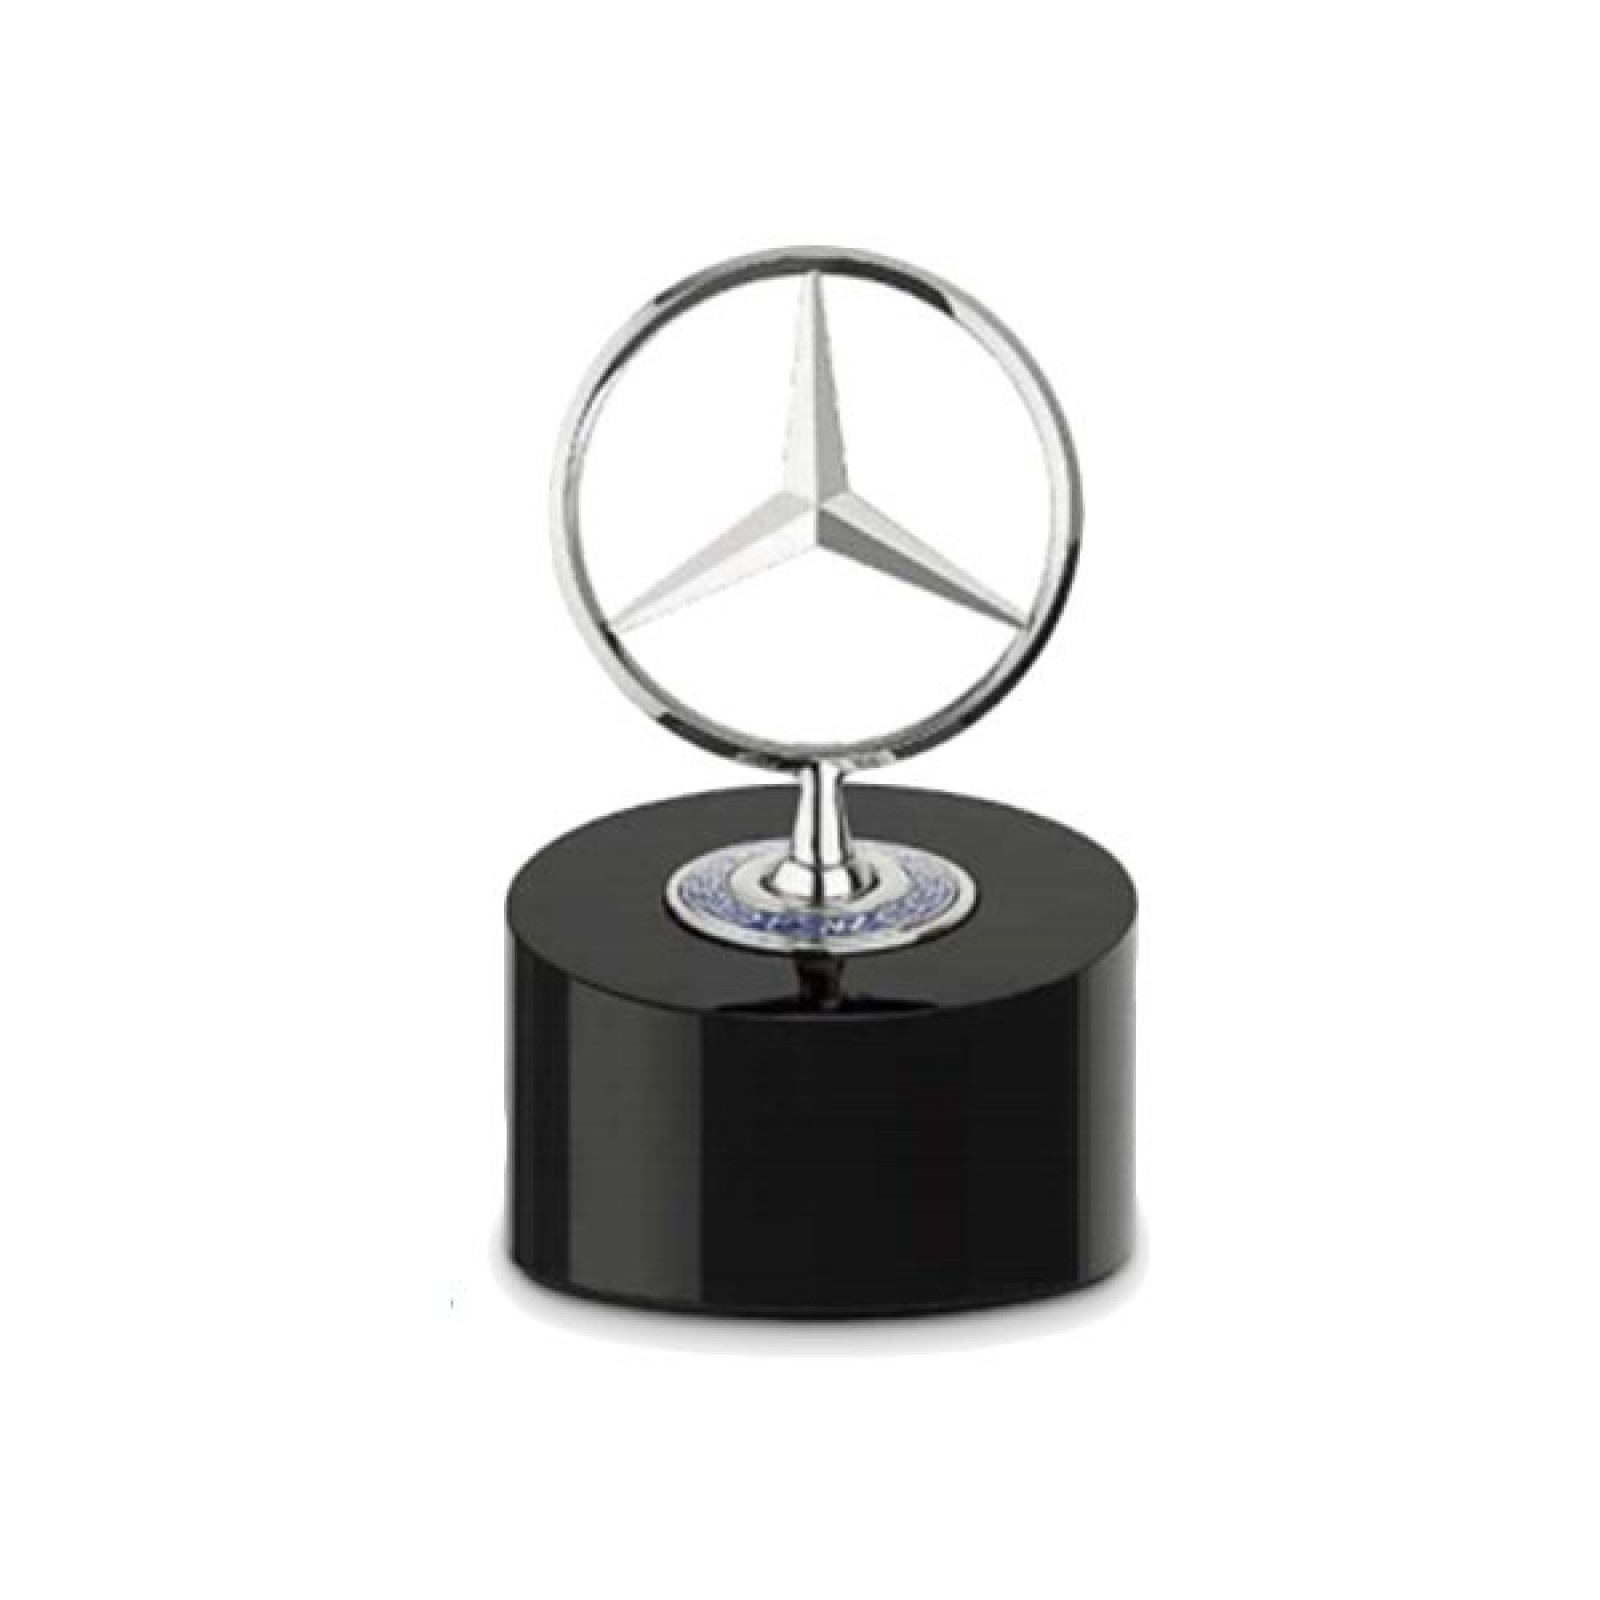 Mercedes benz official bonnet star desk paperweight the for Official mercedes benz parts